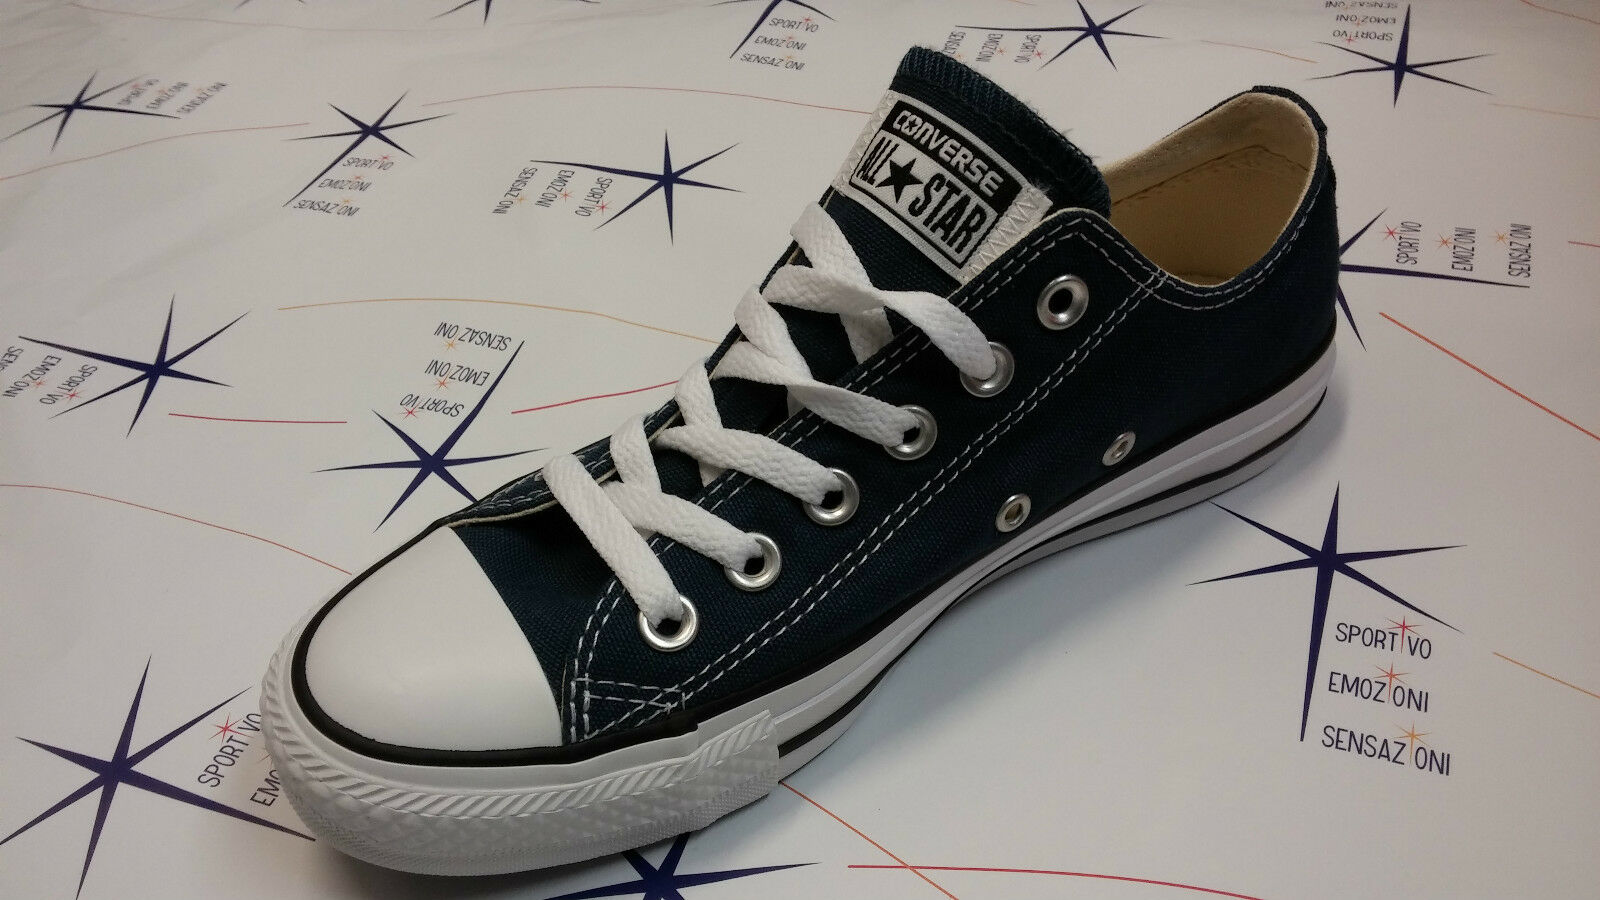 Zapatos  Converse Blu All Star Ox  Blu Converse Navy Canvas Tela Zapatillas  M9697 232 ed3b6b